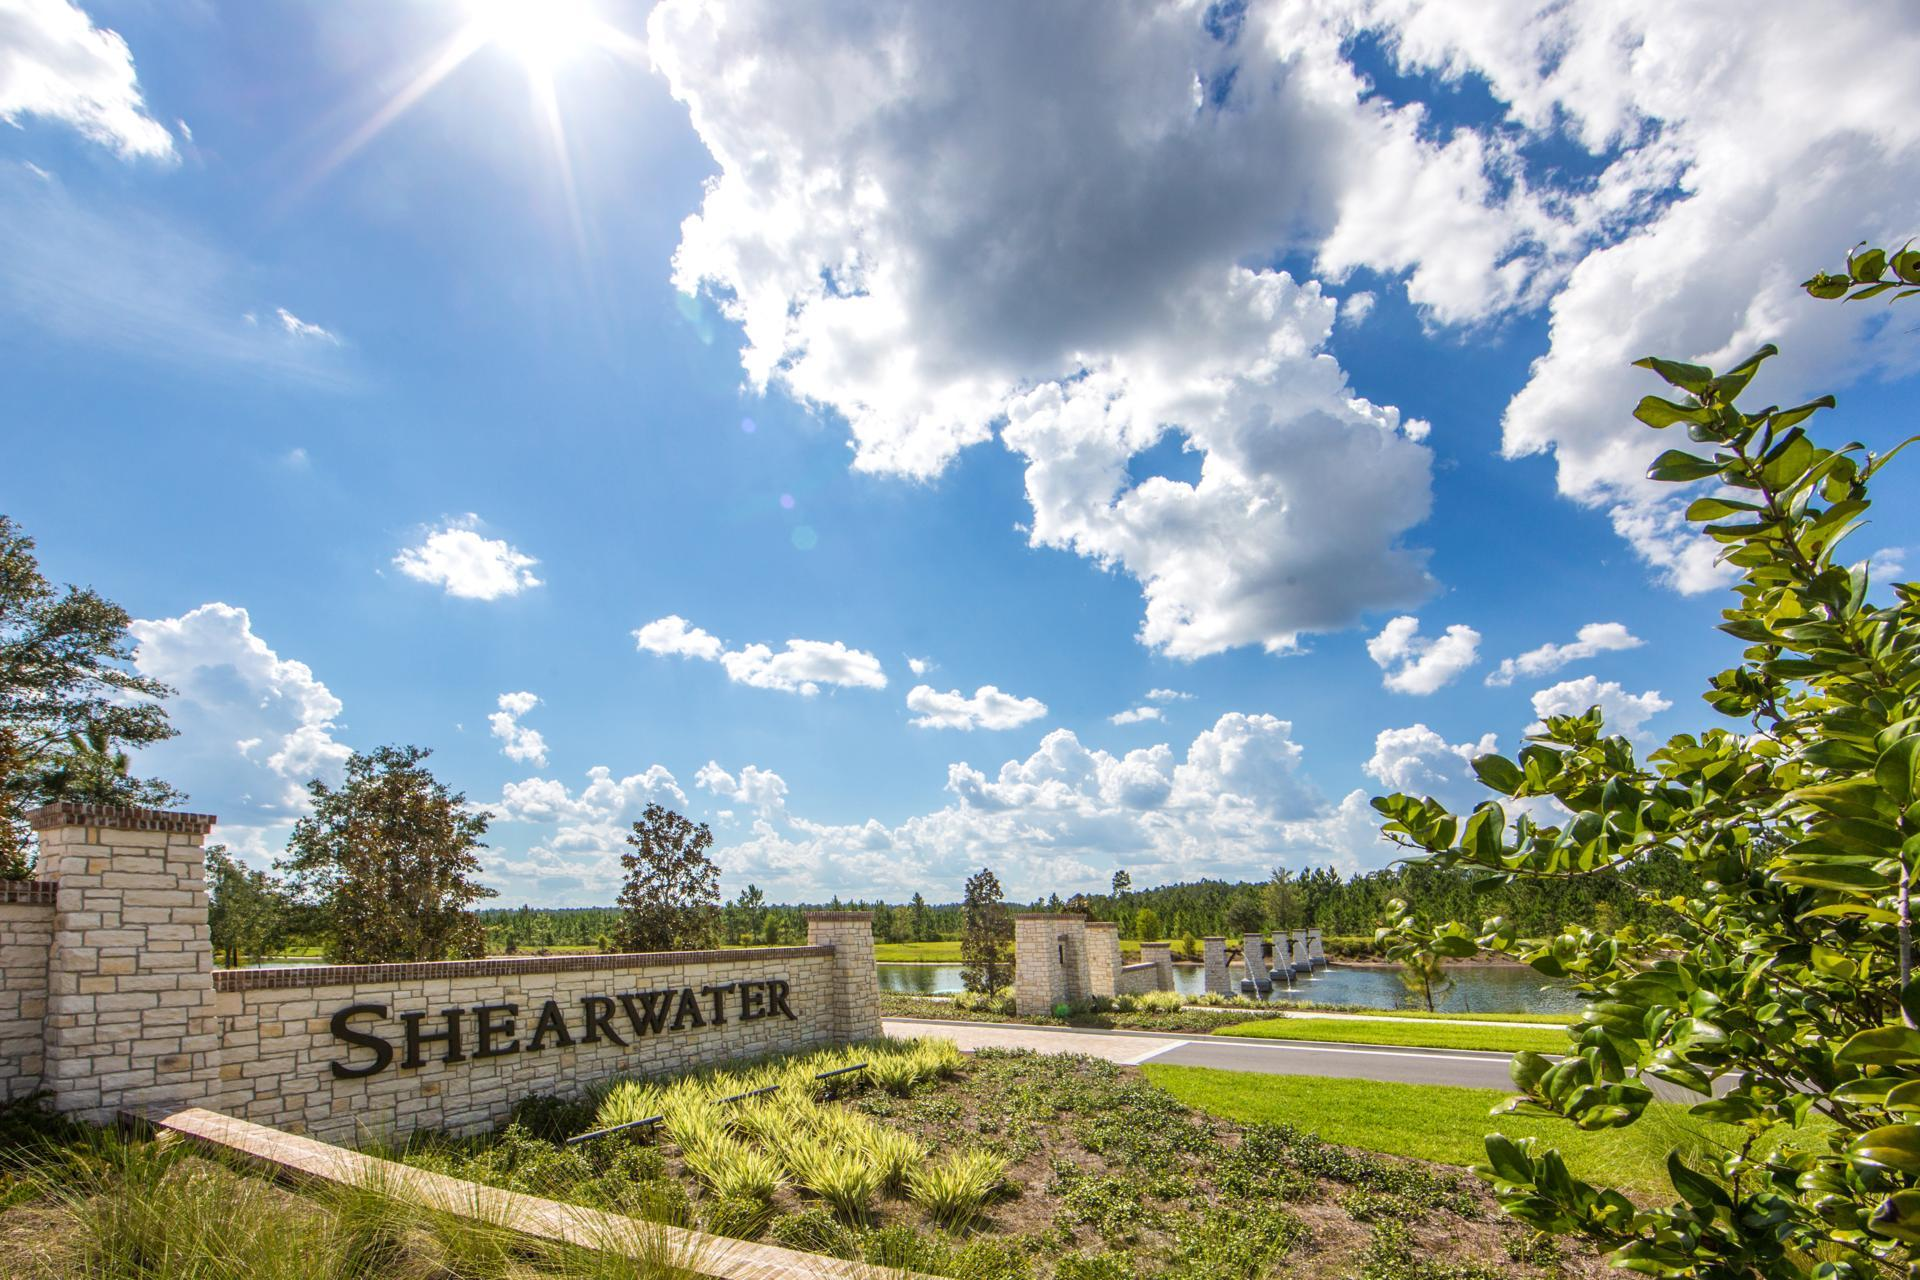 The Shearwater Entrance